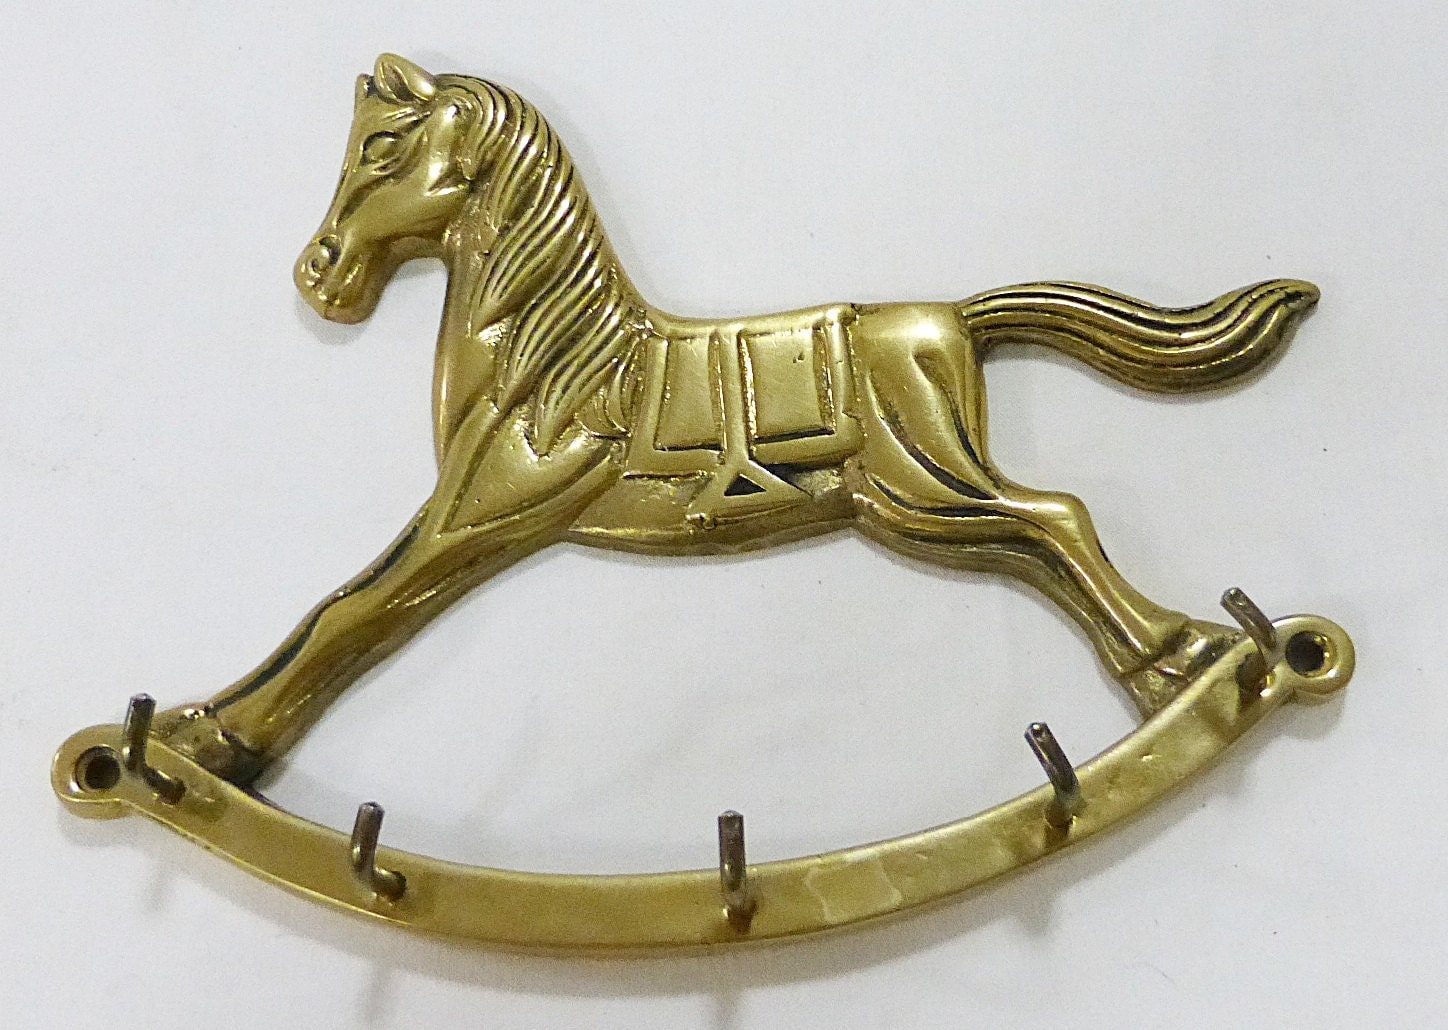 Brass key holder rocking horse wall hanging home decor vintage